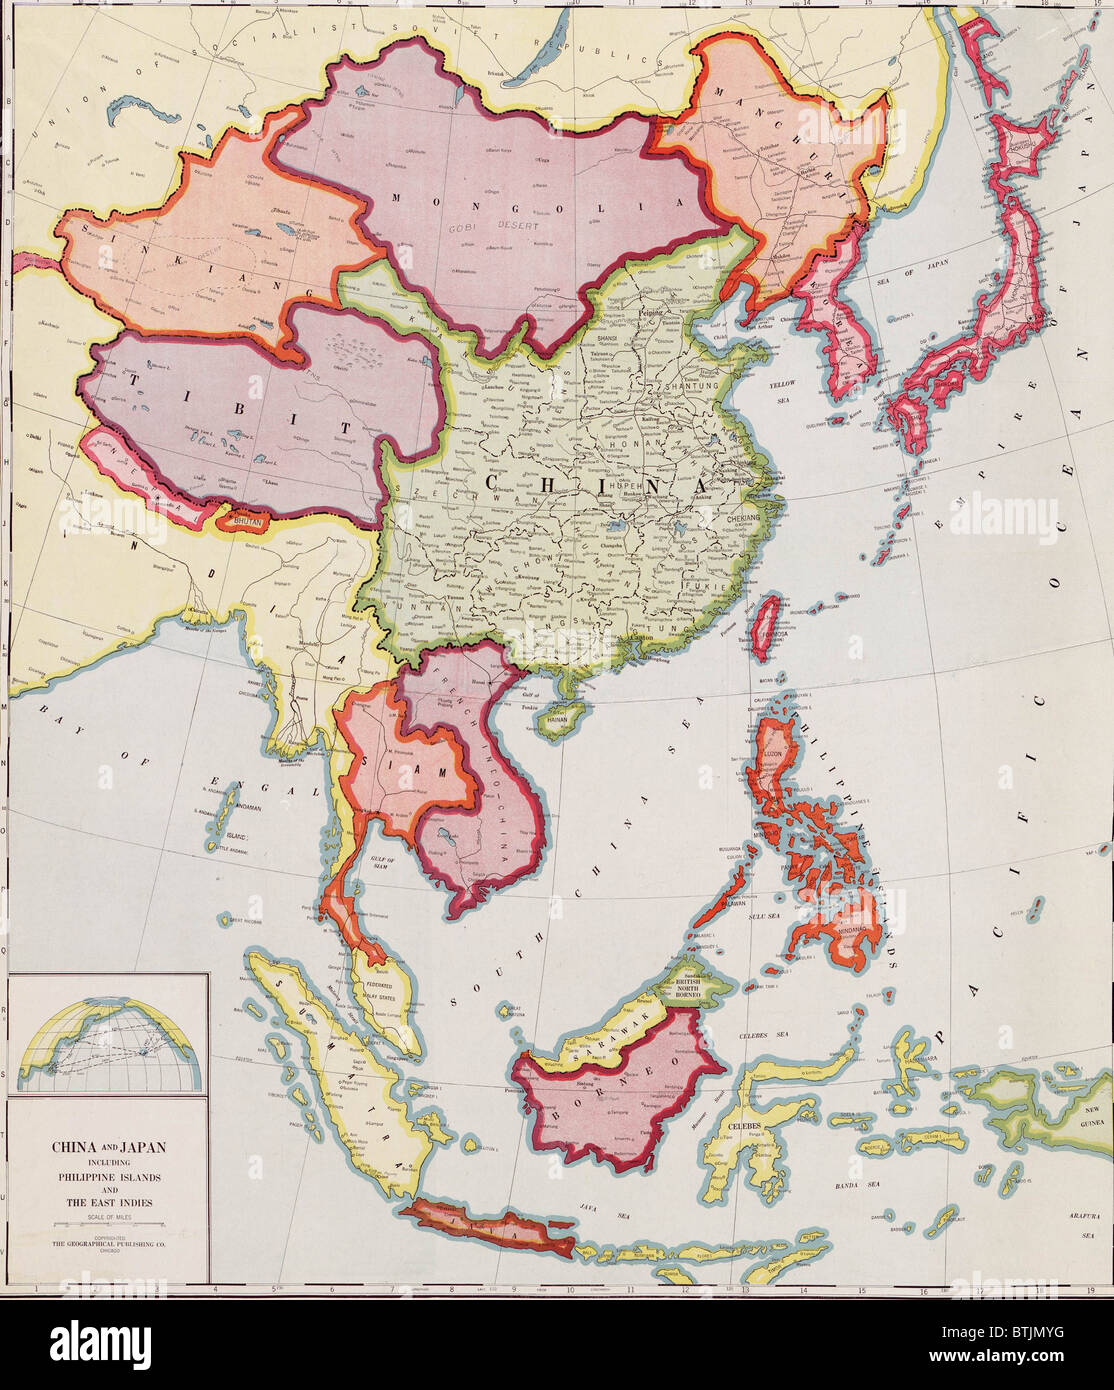 1932 map of east asia showing nations that would become targets of 1932 map of east asia showing nations that would become targets of japanese expansion and invasion in the sino japanese war and world war ii gumiabroncs